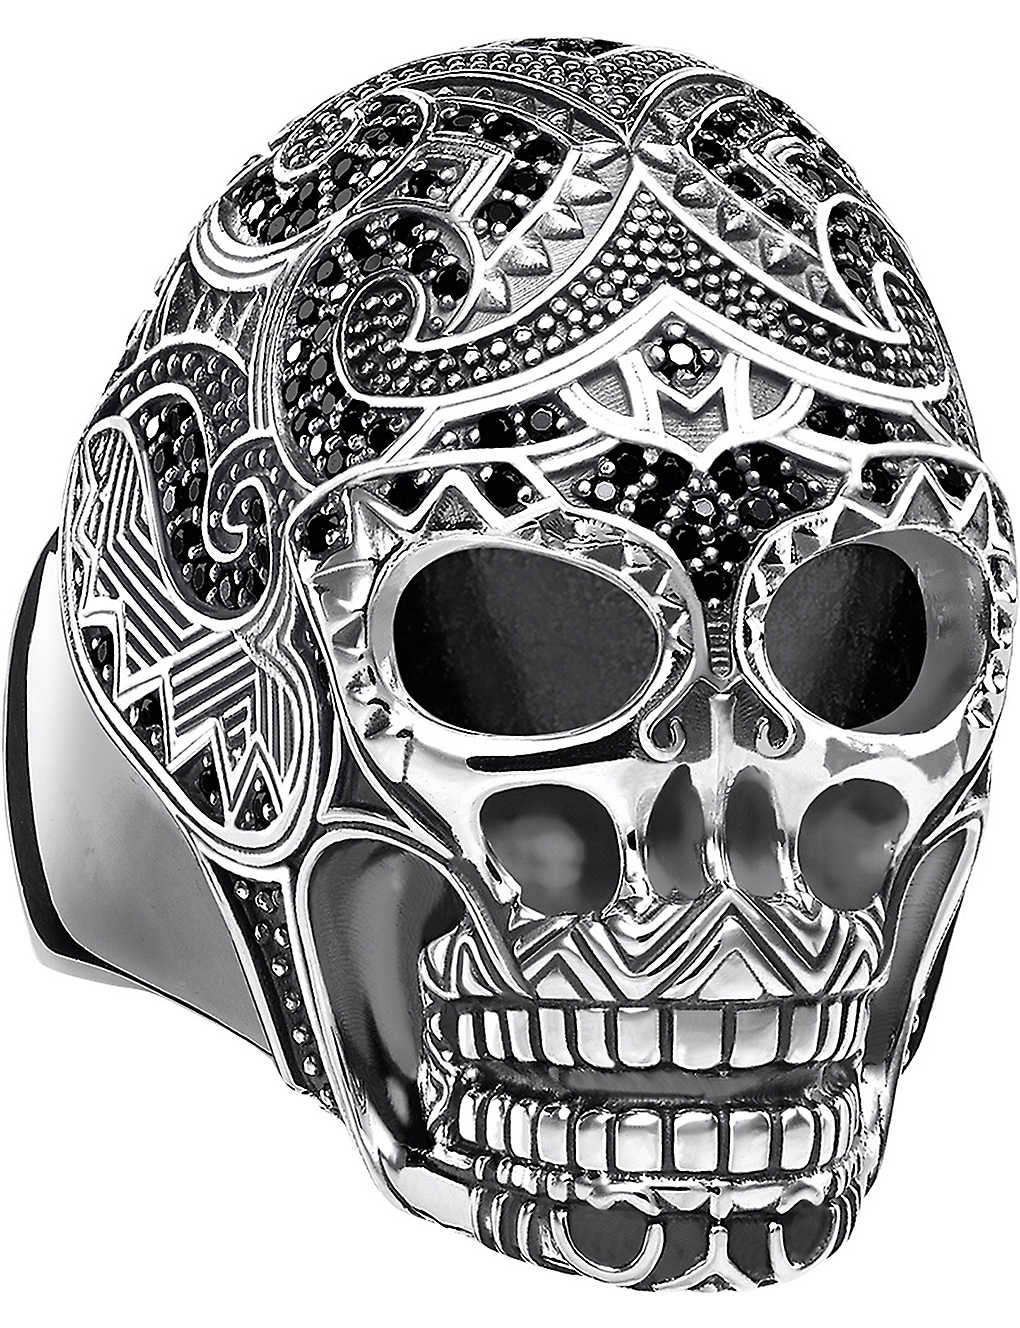 THOMAS SABO: Rebel at Heart skull sterling silver ring